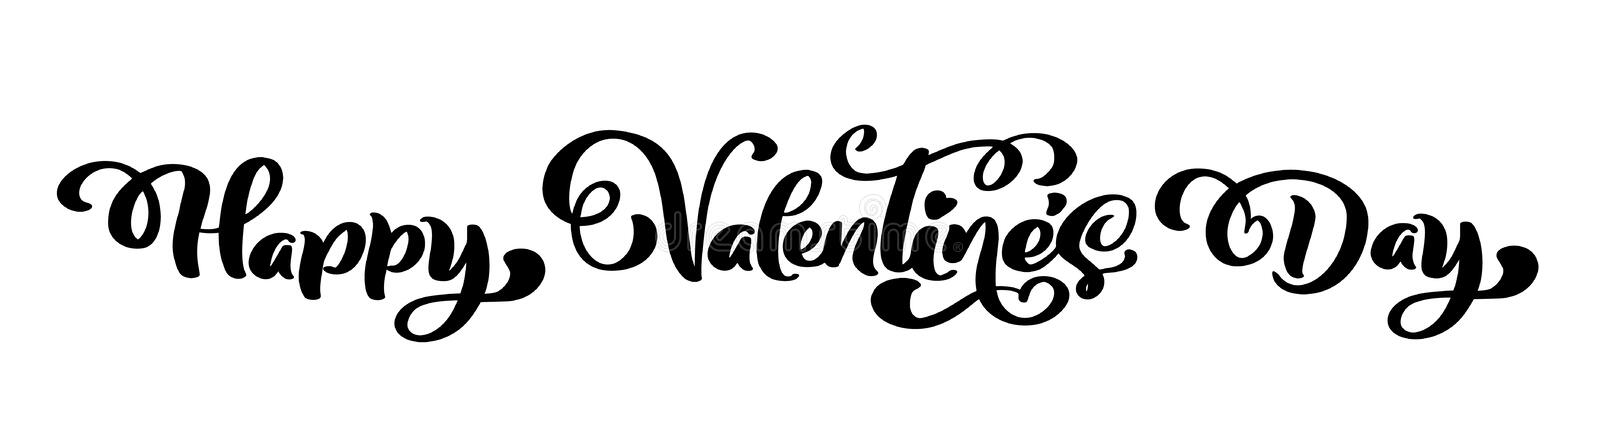 Calligraphy phrase Happy Valentine s Day. Vector Valentines Day Hand Drawn lettering. Isolated illustration Heart. Holiday sketch doodle Design valentine card vector illustration